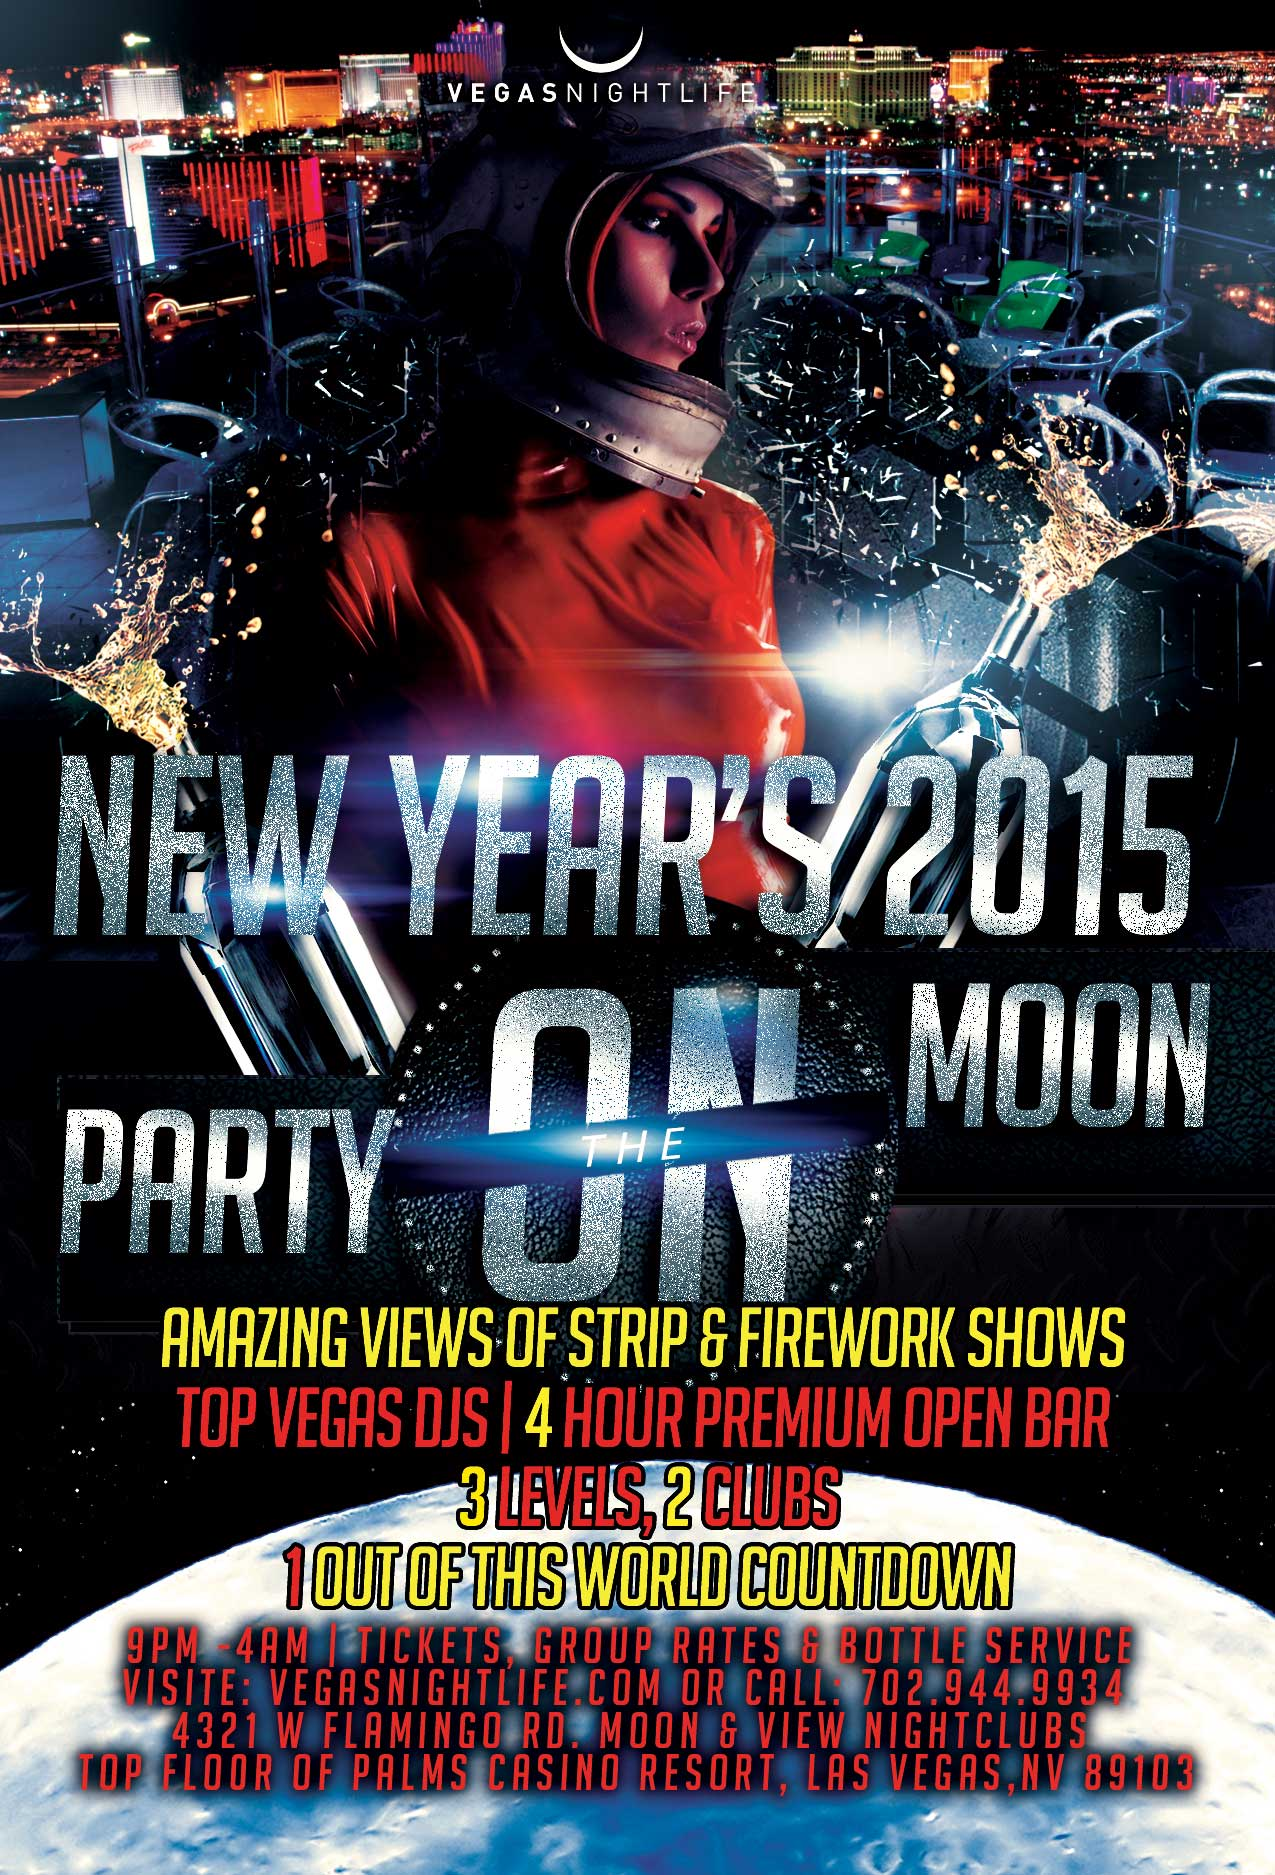 Party on the Moon New Years Eve 2015